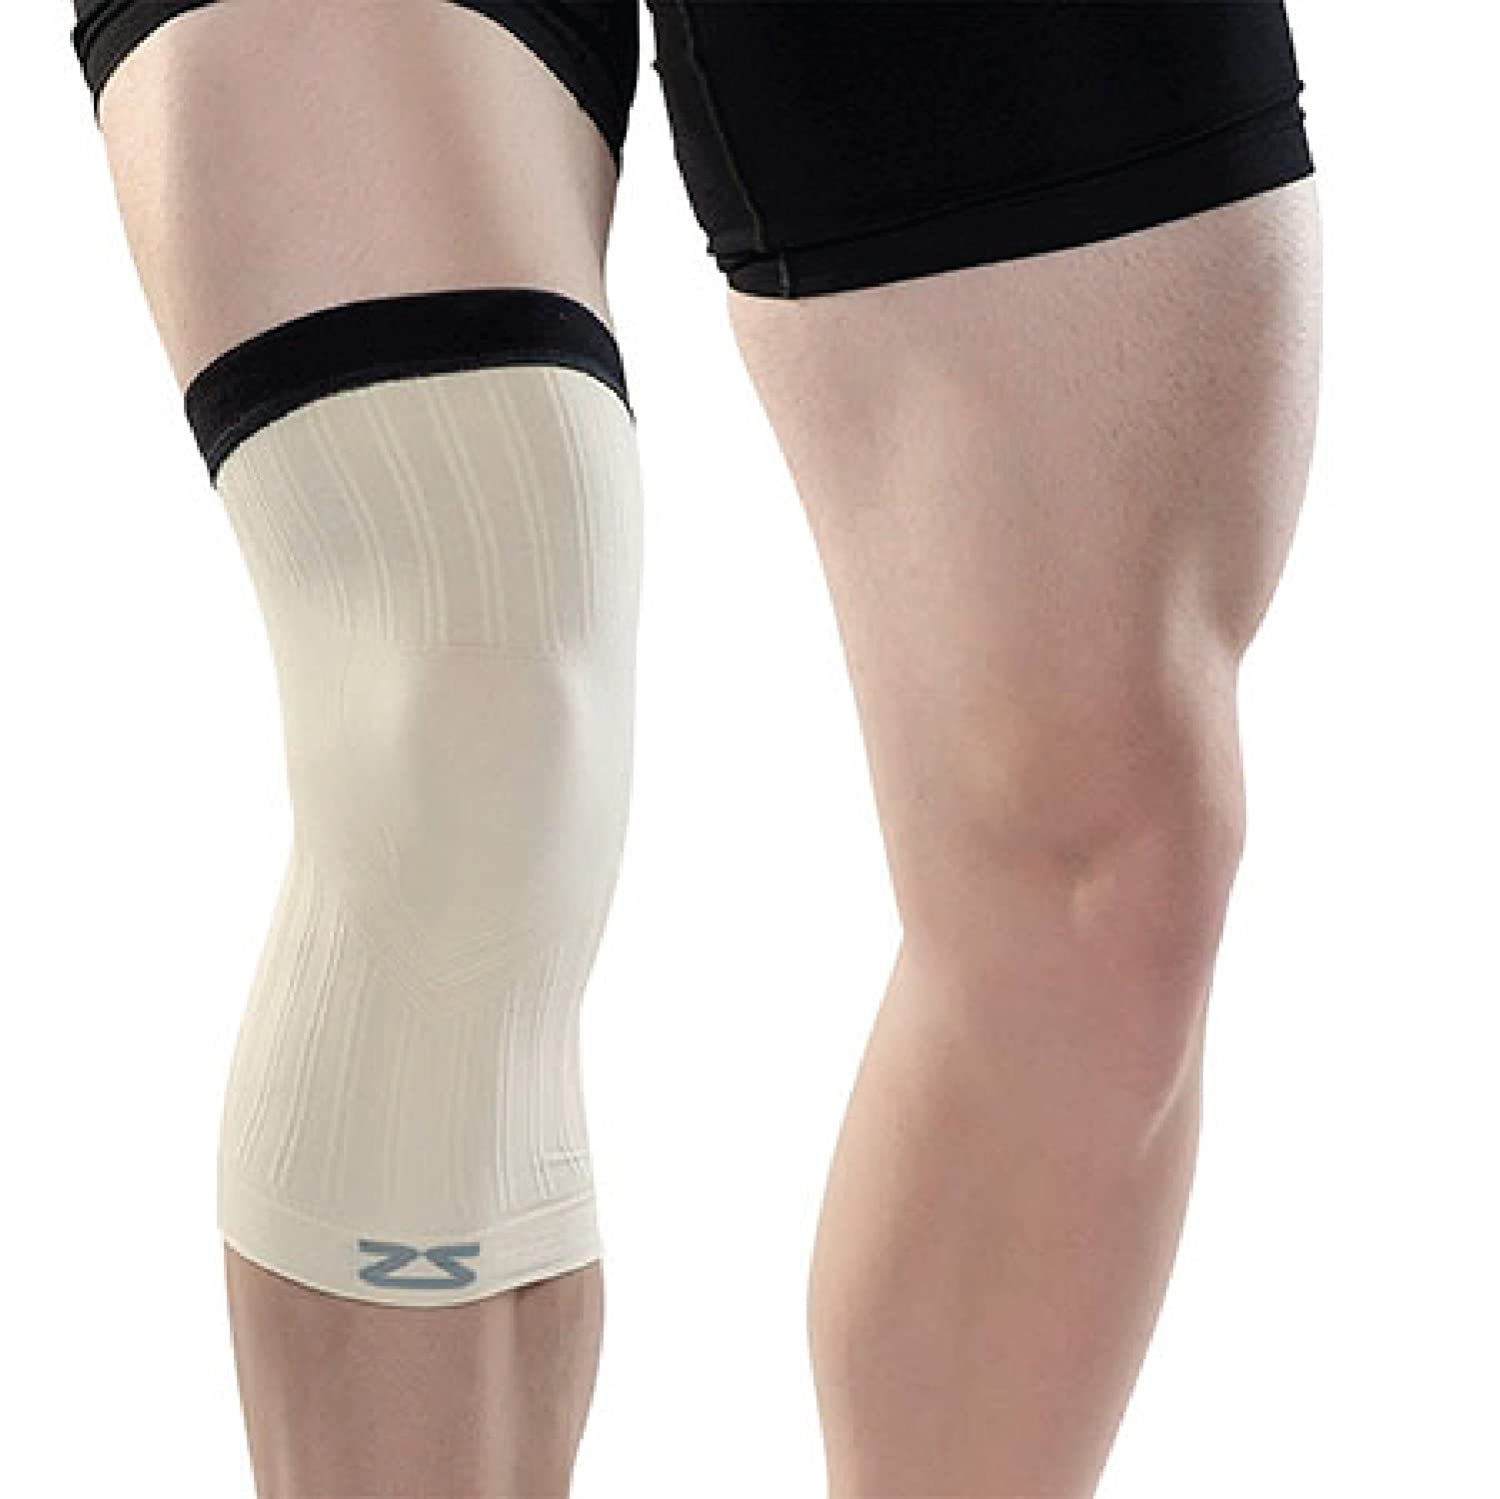 1ce587787f Amazon.com: Zensah Compression Knee Sleeve - Relieve Knee Pain, Treat Runners  Knee, Patella Support: Sports & Outdoors